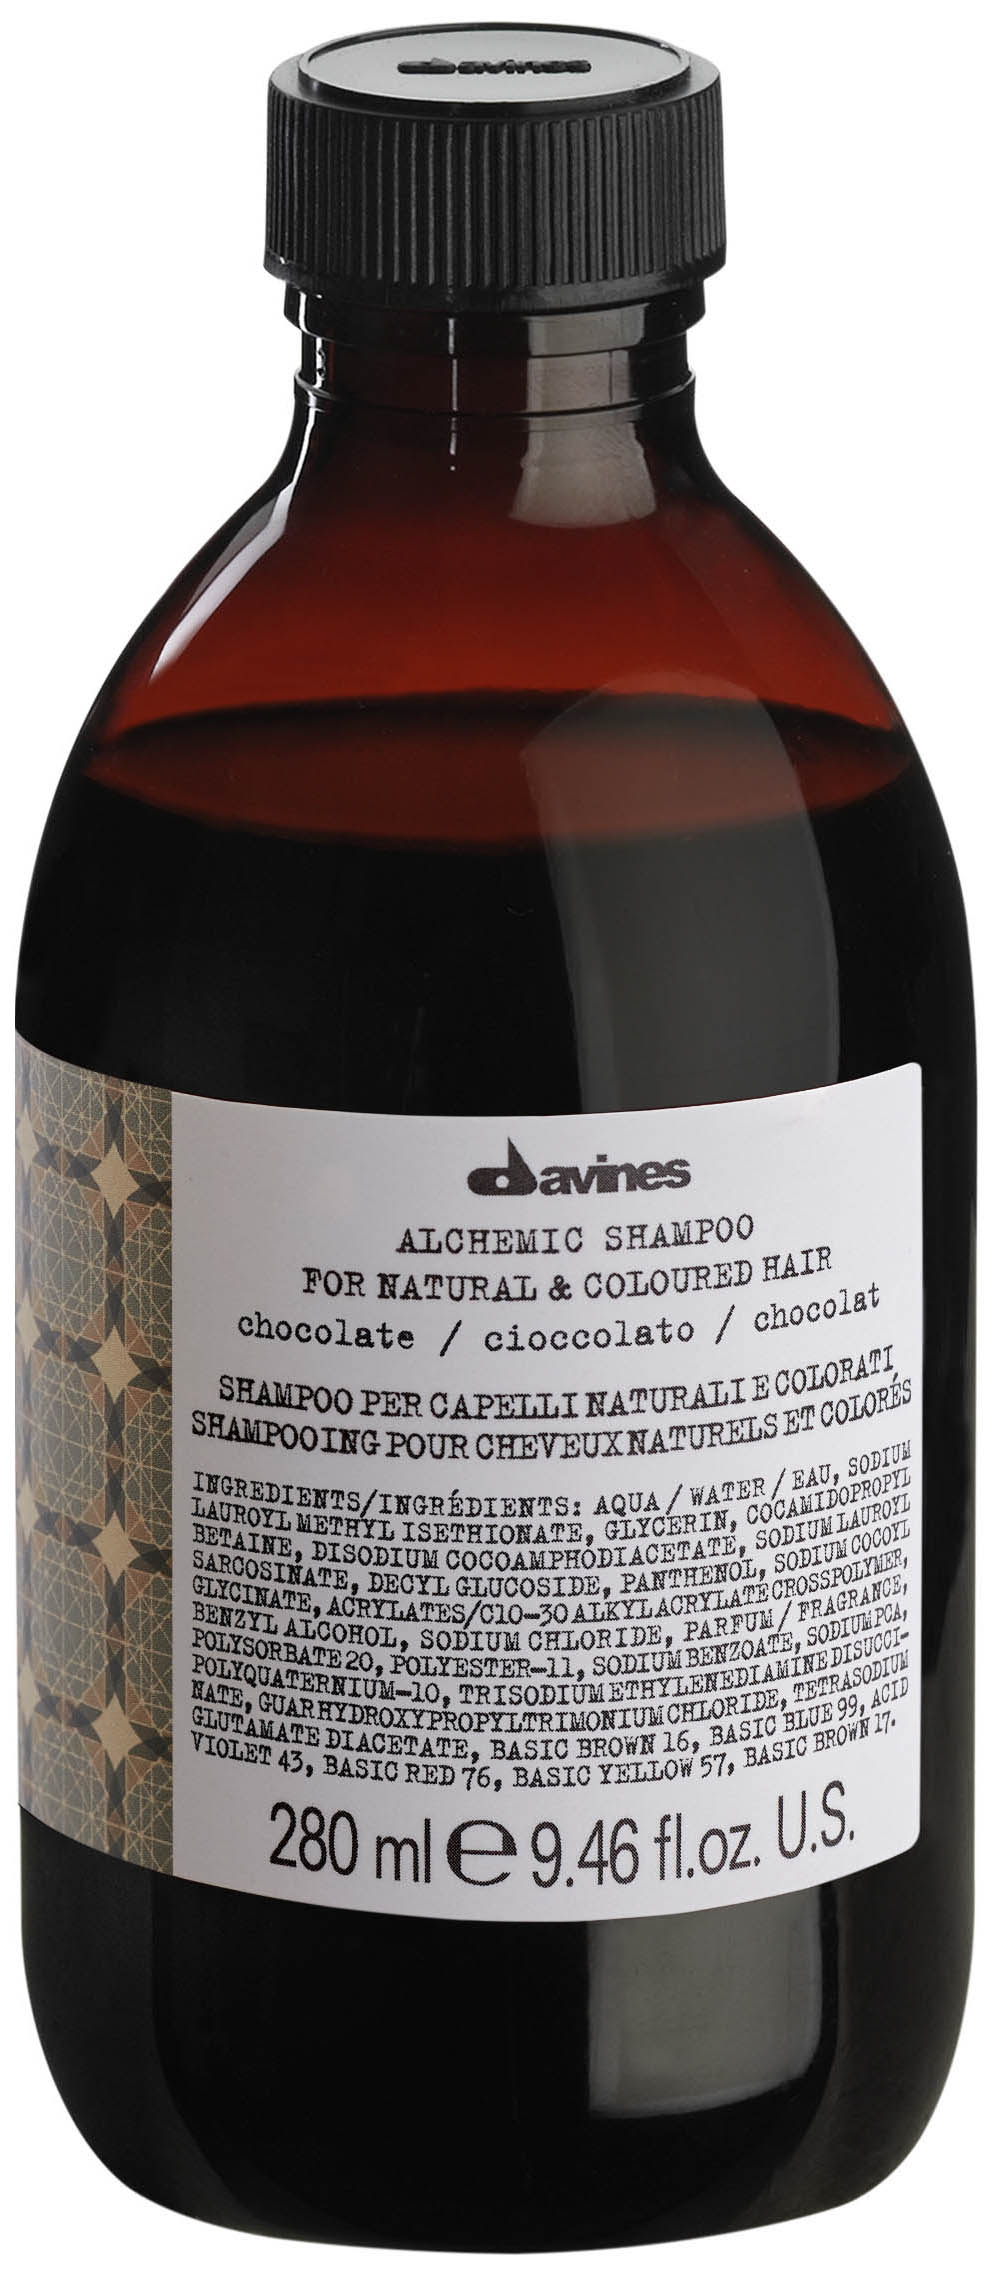 DAVINES SHAMPOO FOR NATURAL AND COLOURED HAIR CHOCOLATE